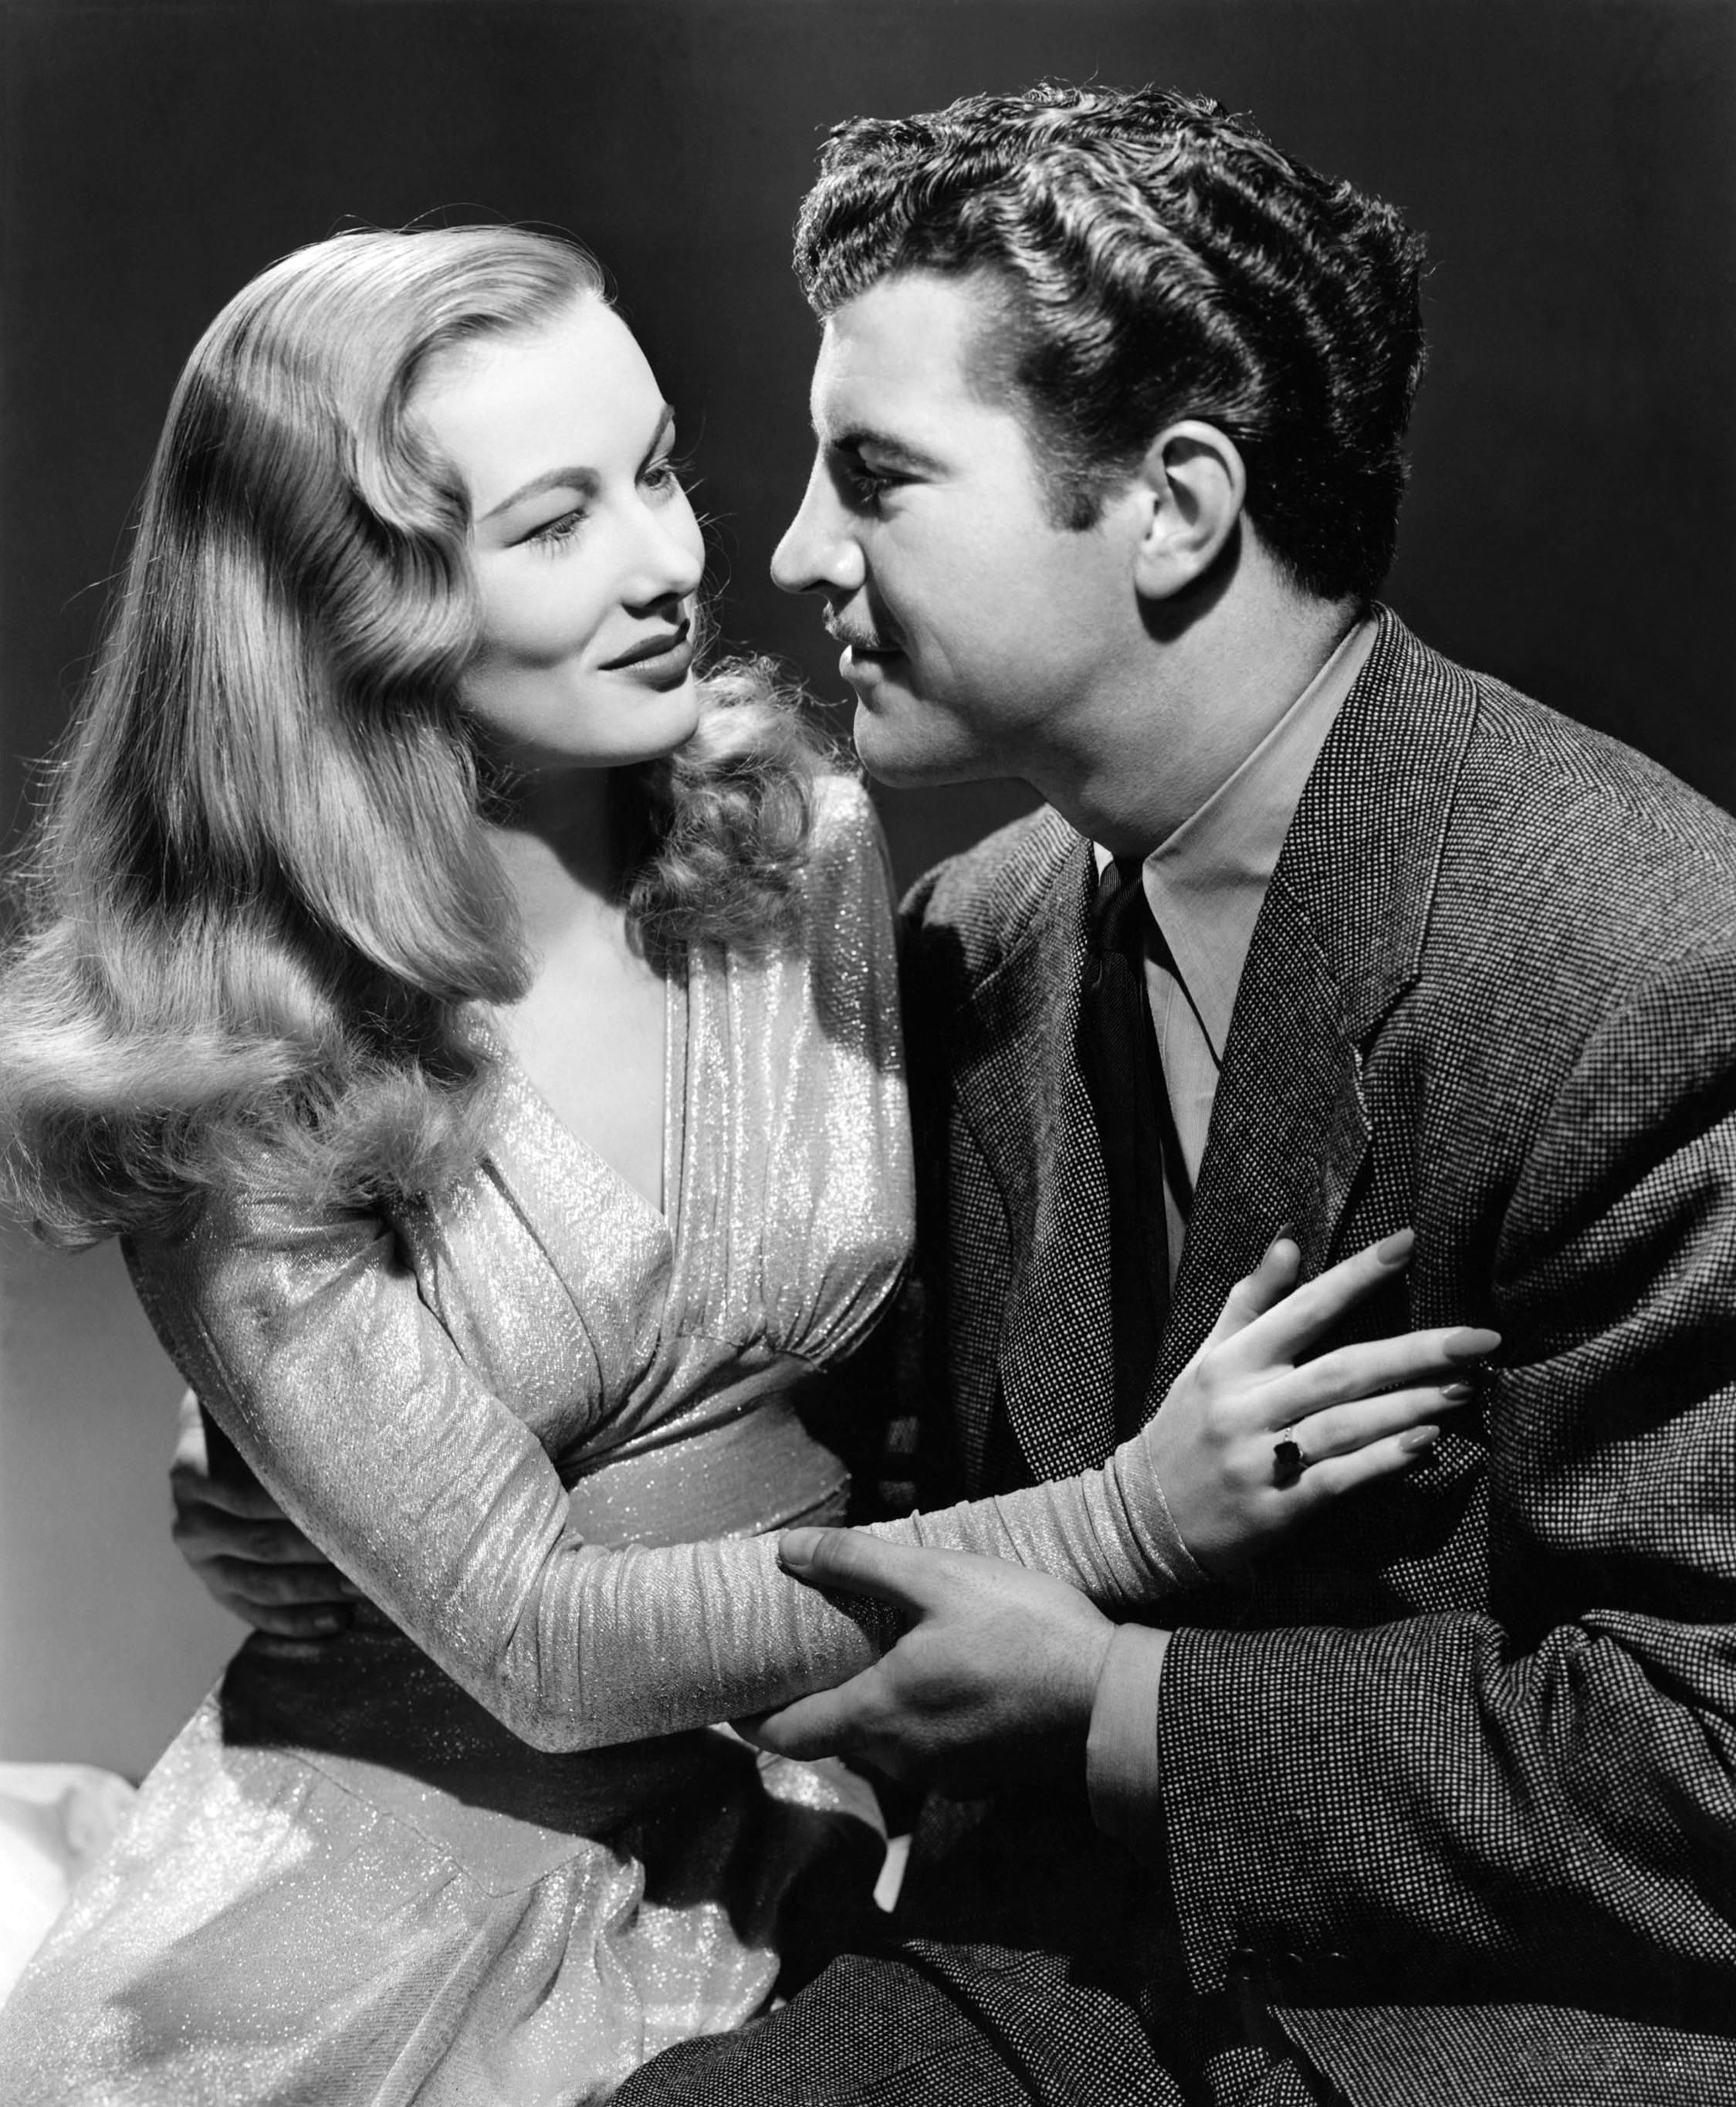 Robert Preston in This Gun for Hire With Veronica Lake